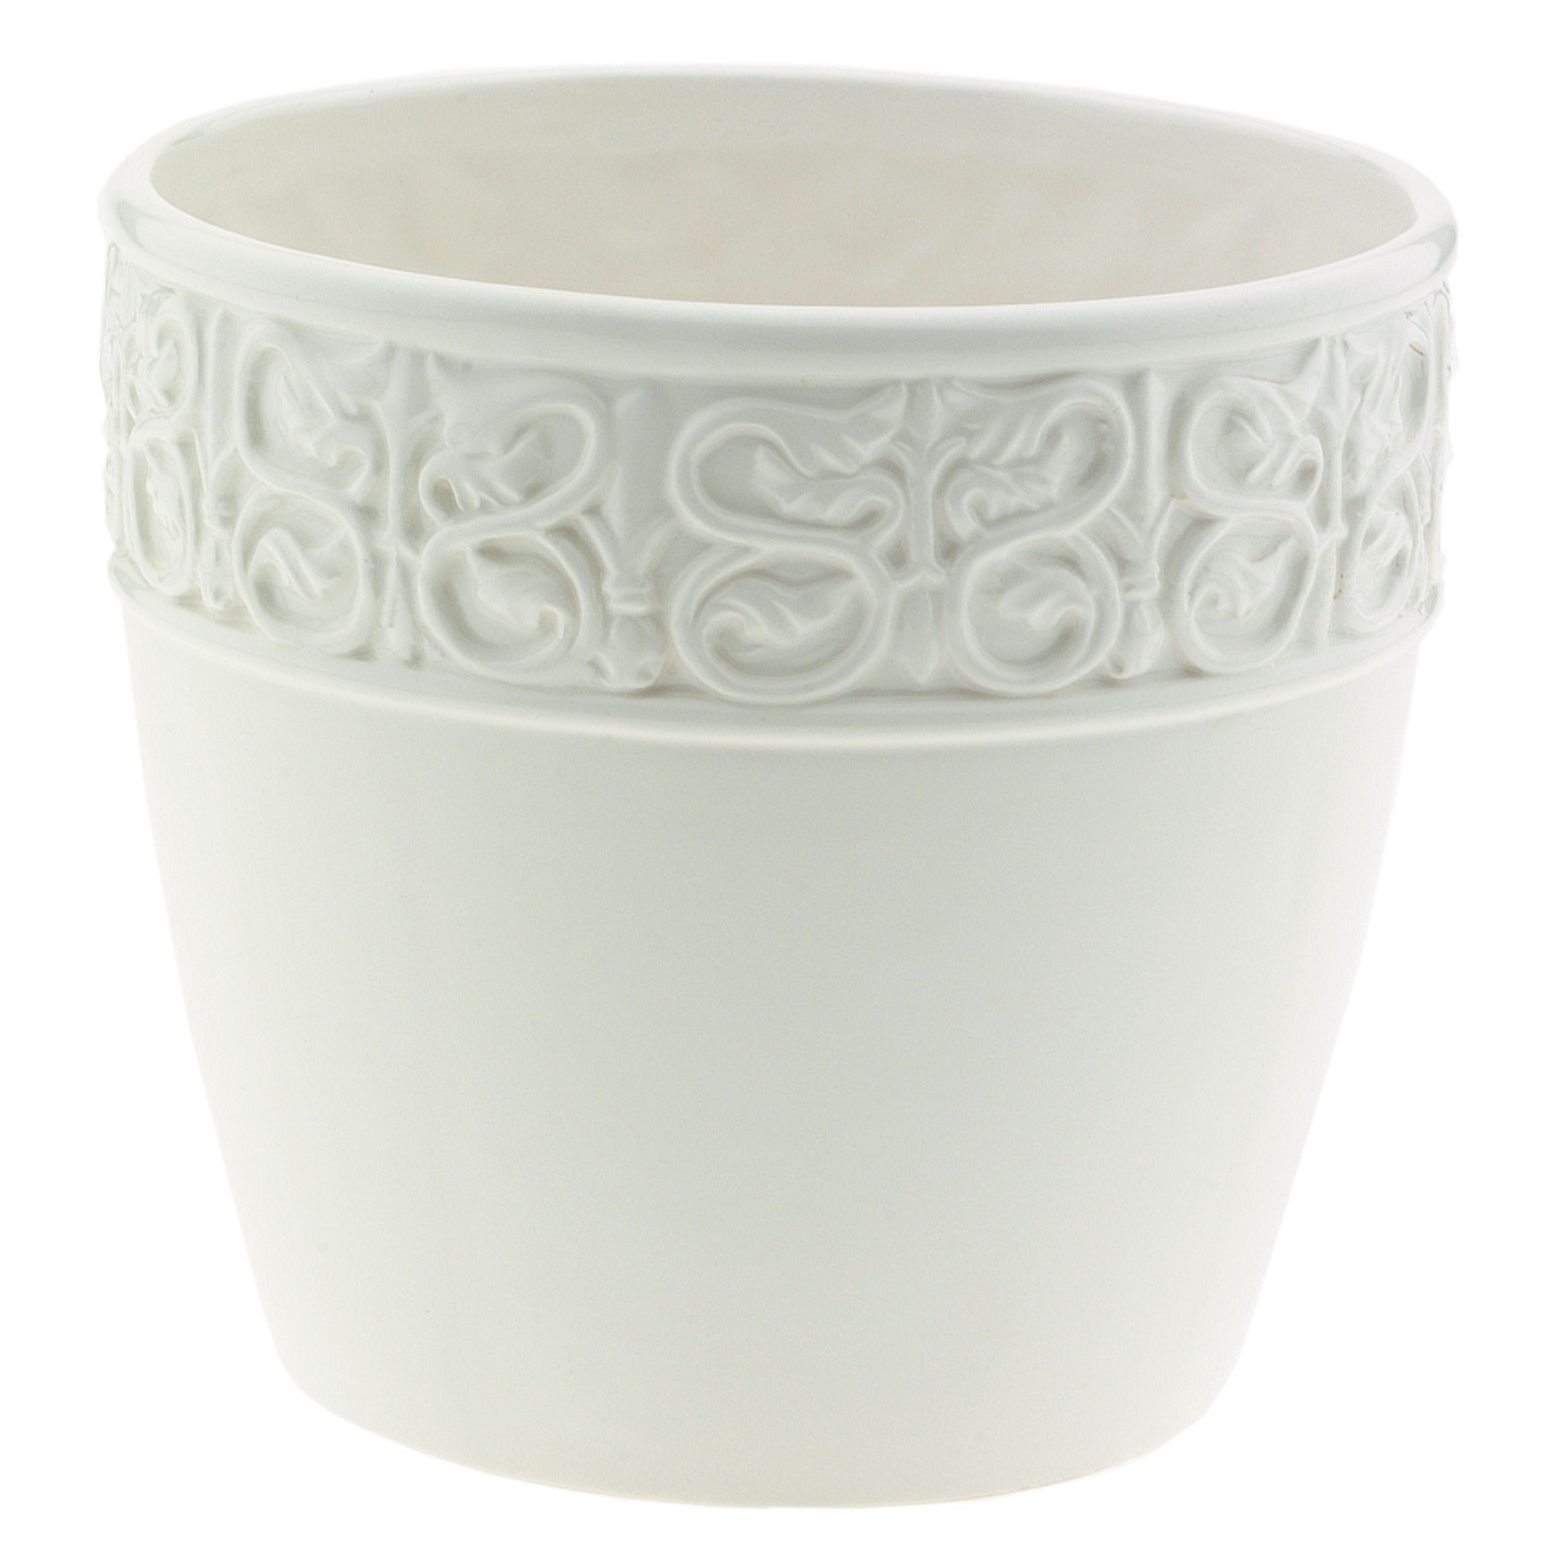 8 Inch White Ceramic Decorative Planter Fits 8 Inch Pots